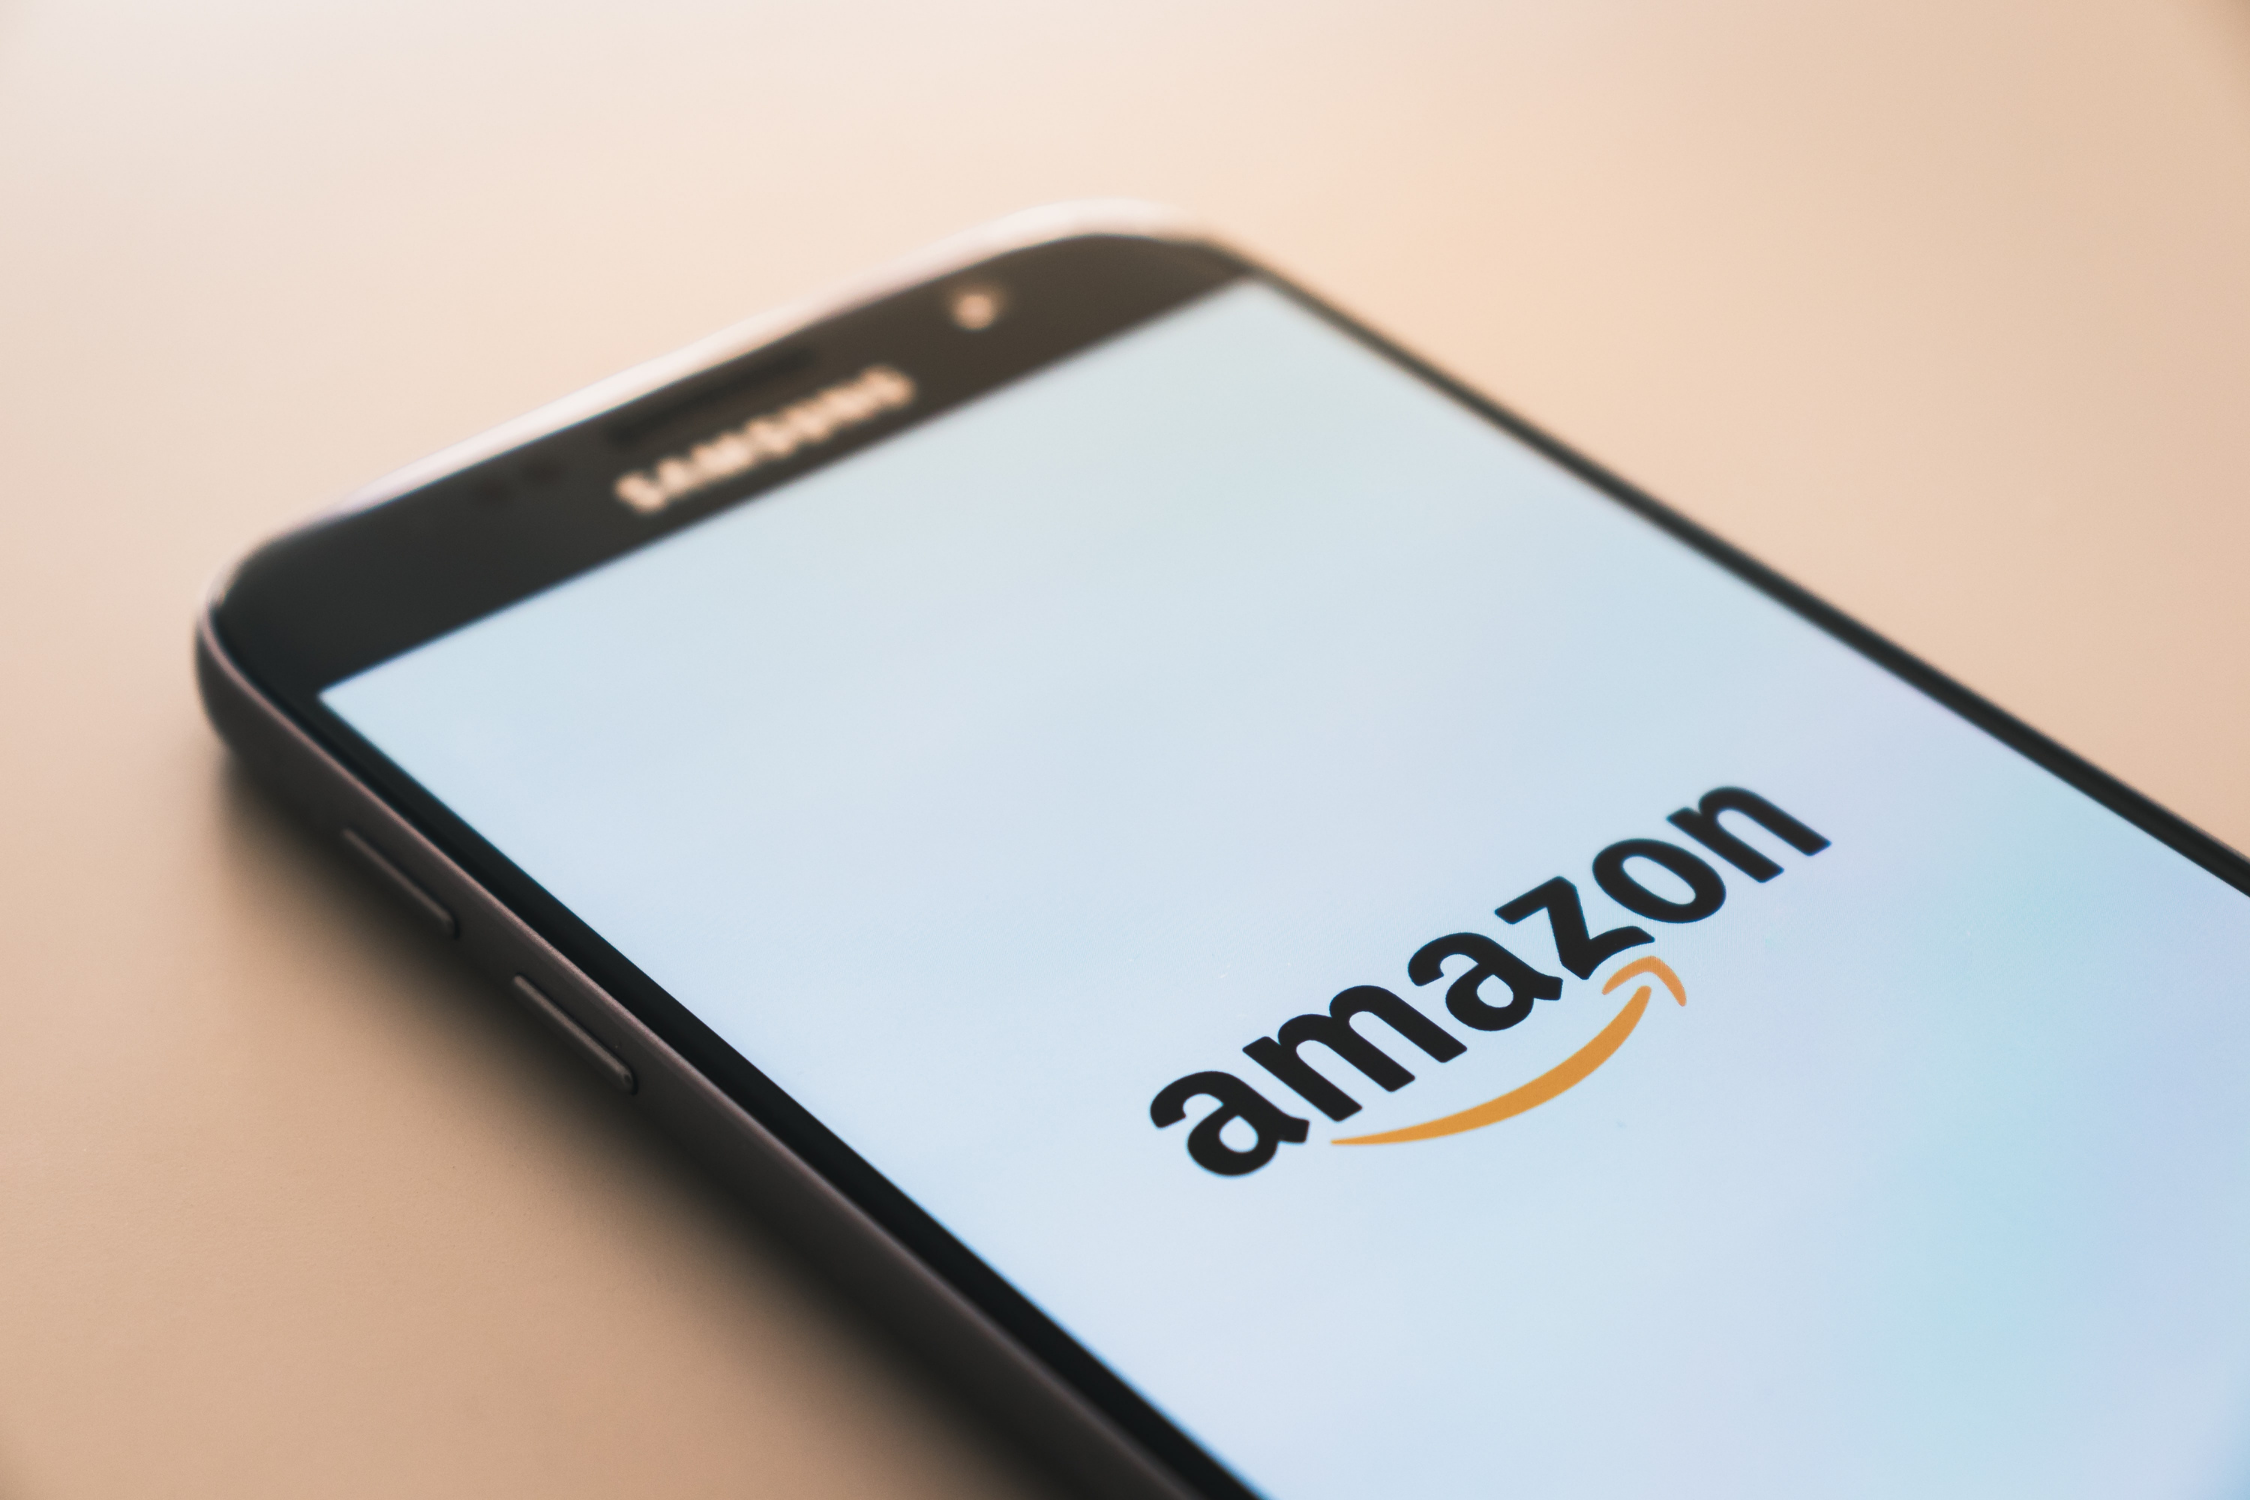 How to compete online against Amazon